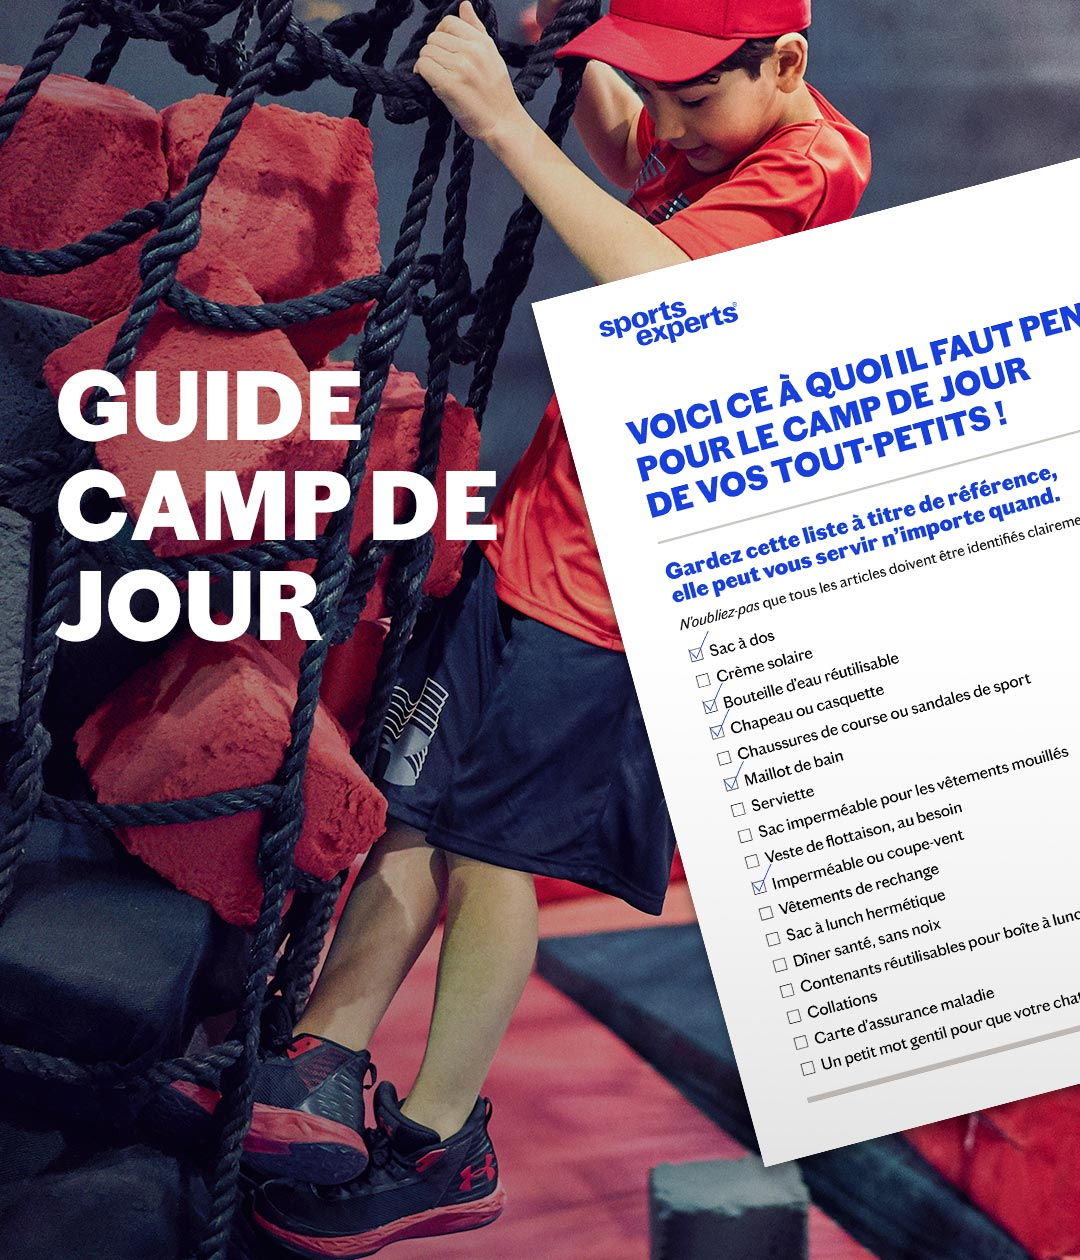 Guide Camp de Jour